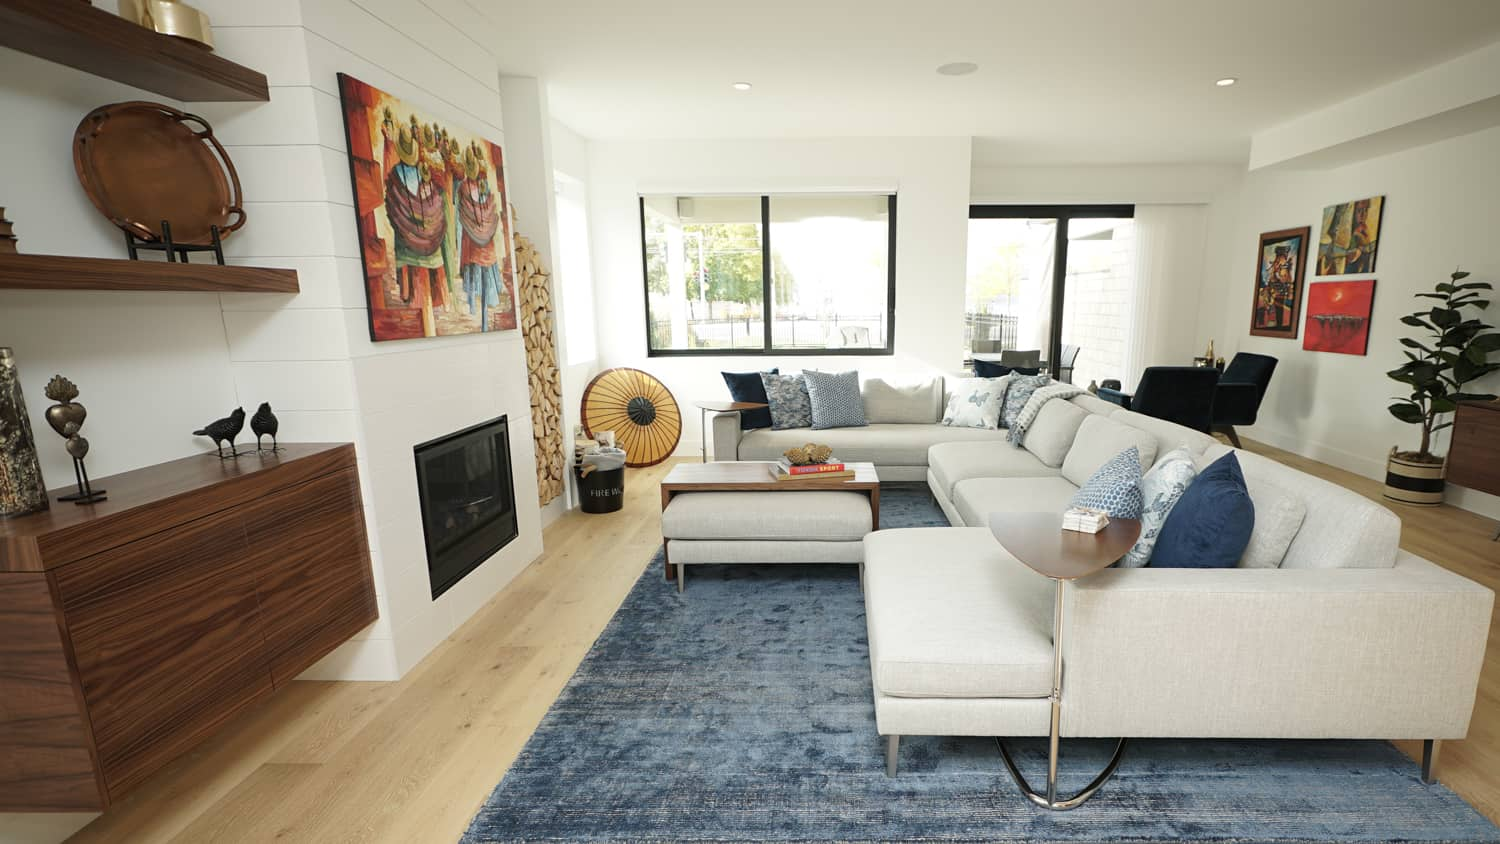 5 reasons why you should hire an interior designer bcliving - Should i hire an interior decorator ...